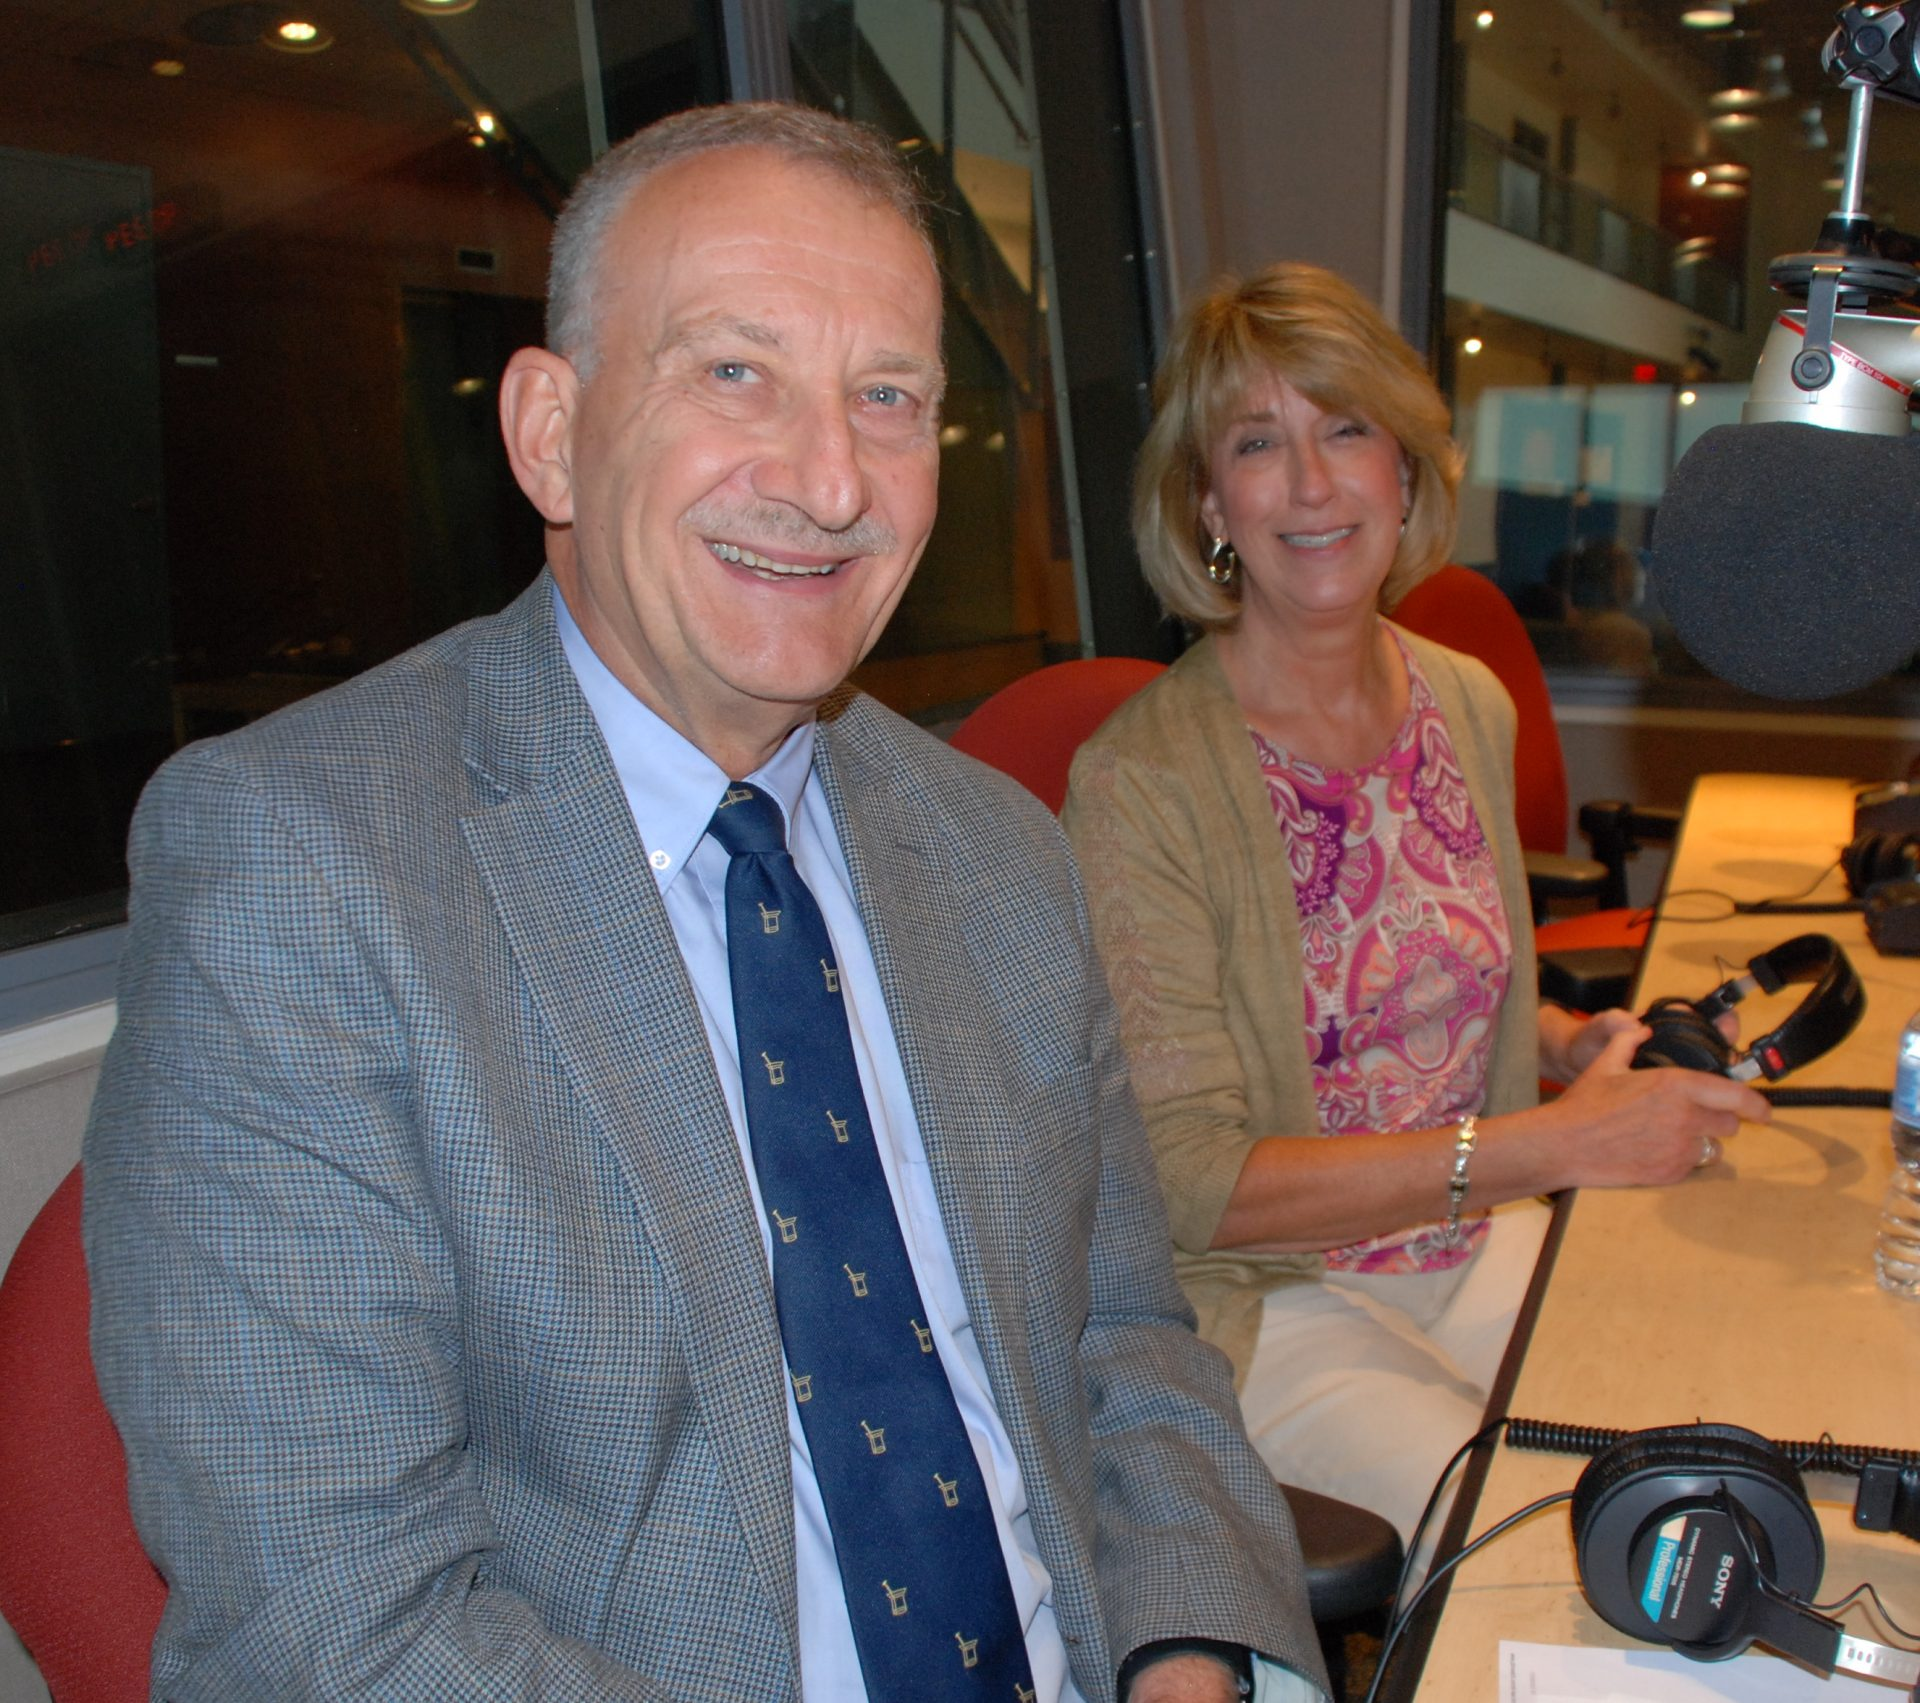 Chuck Kray pharmacist with Hershey Pharmacy and Patricia Epple, president and CEO of PA Pharmacists Association appear on Smart Talk September 5, 2019.